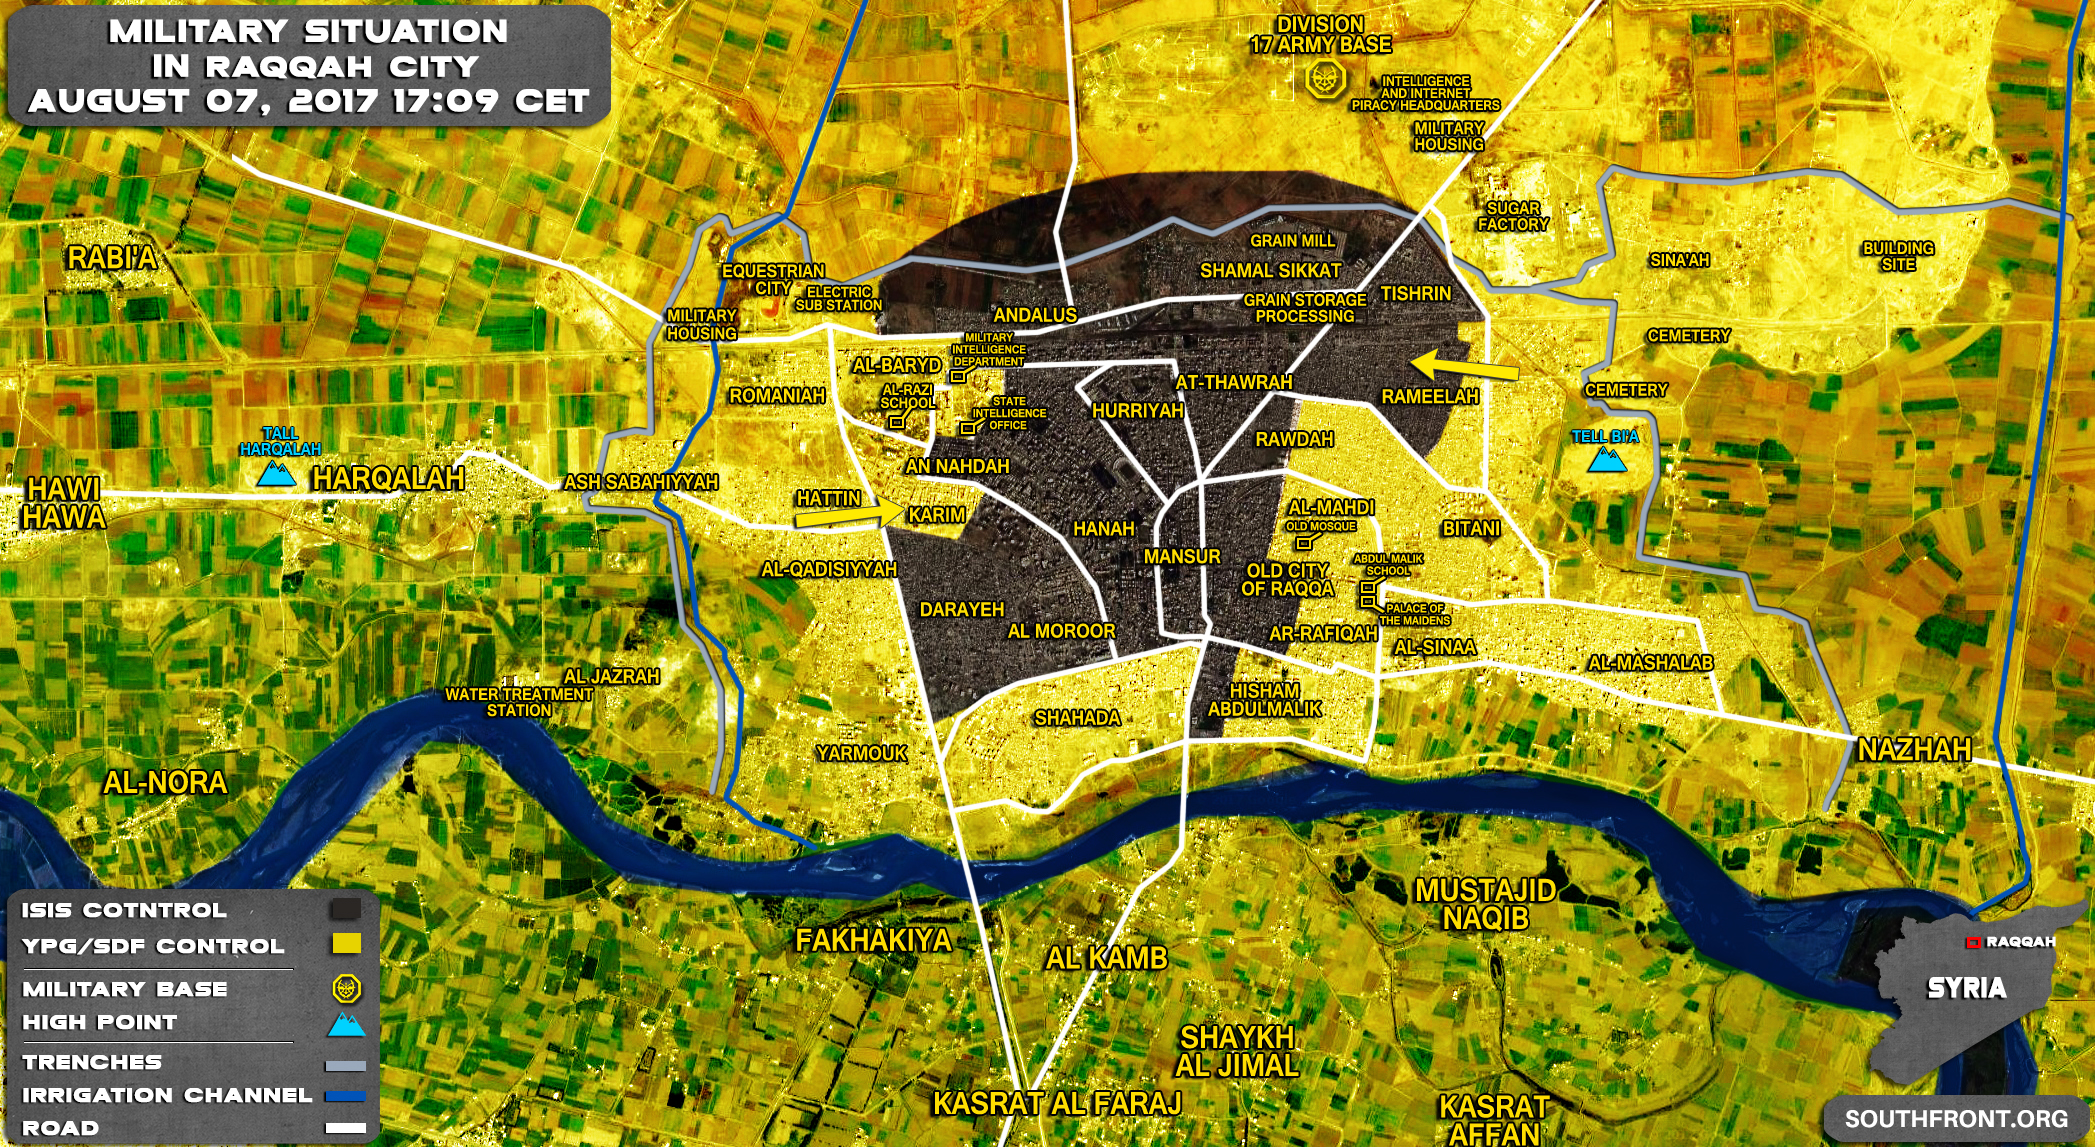 07aug_17_09_Raqqah_city_Syria_War_Map